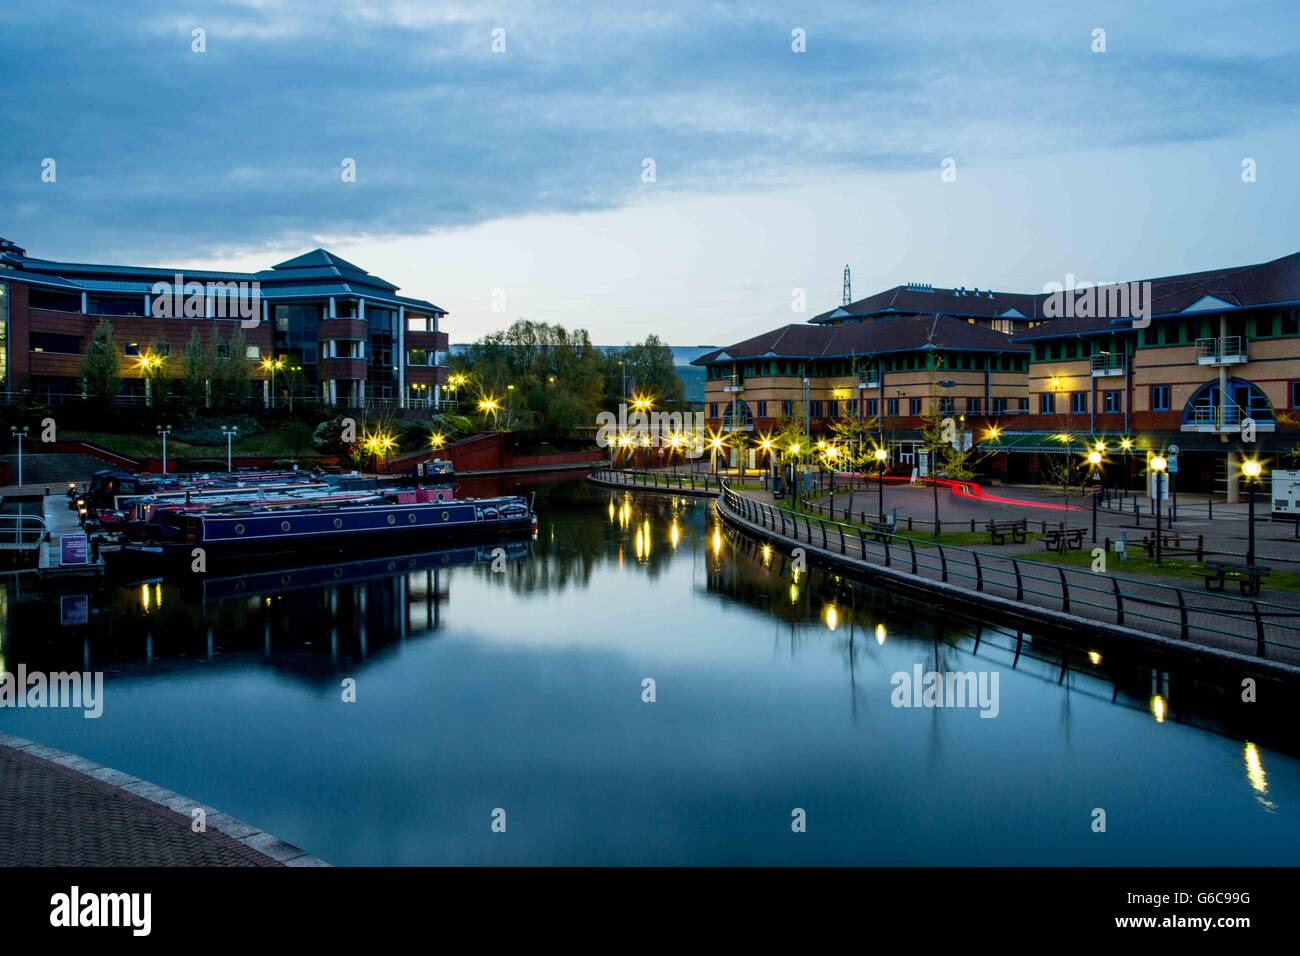 Boats, offices and restaurants at The Waterfront, Merry Hill, Brierley Hill, West Midlands - Stock Image